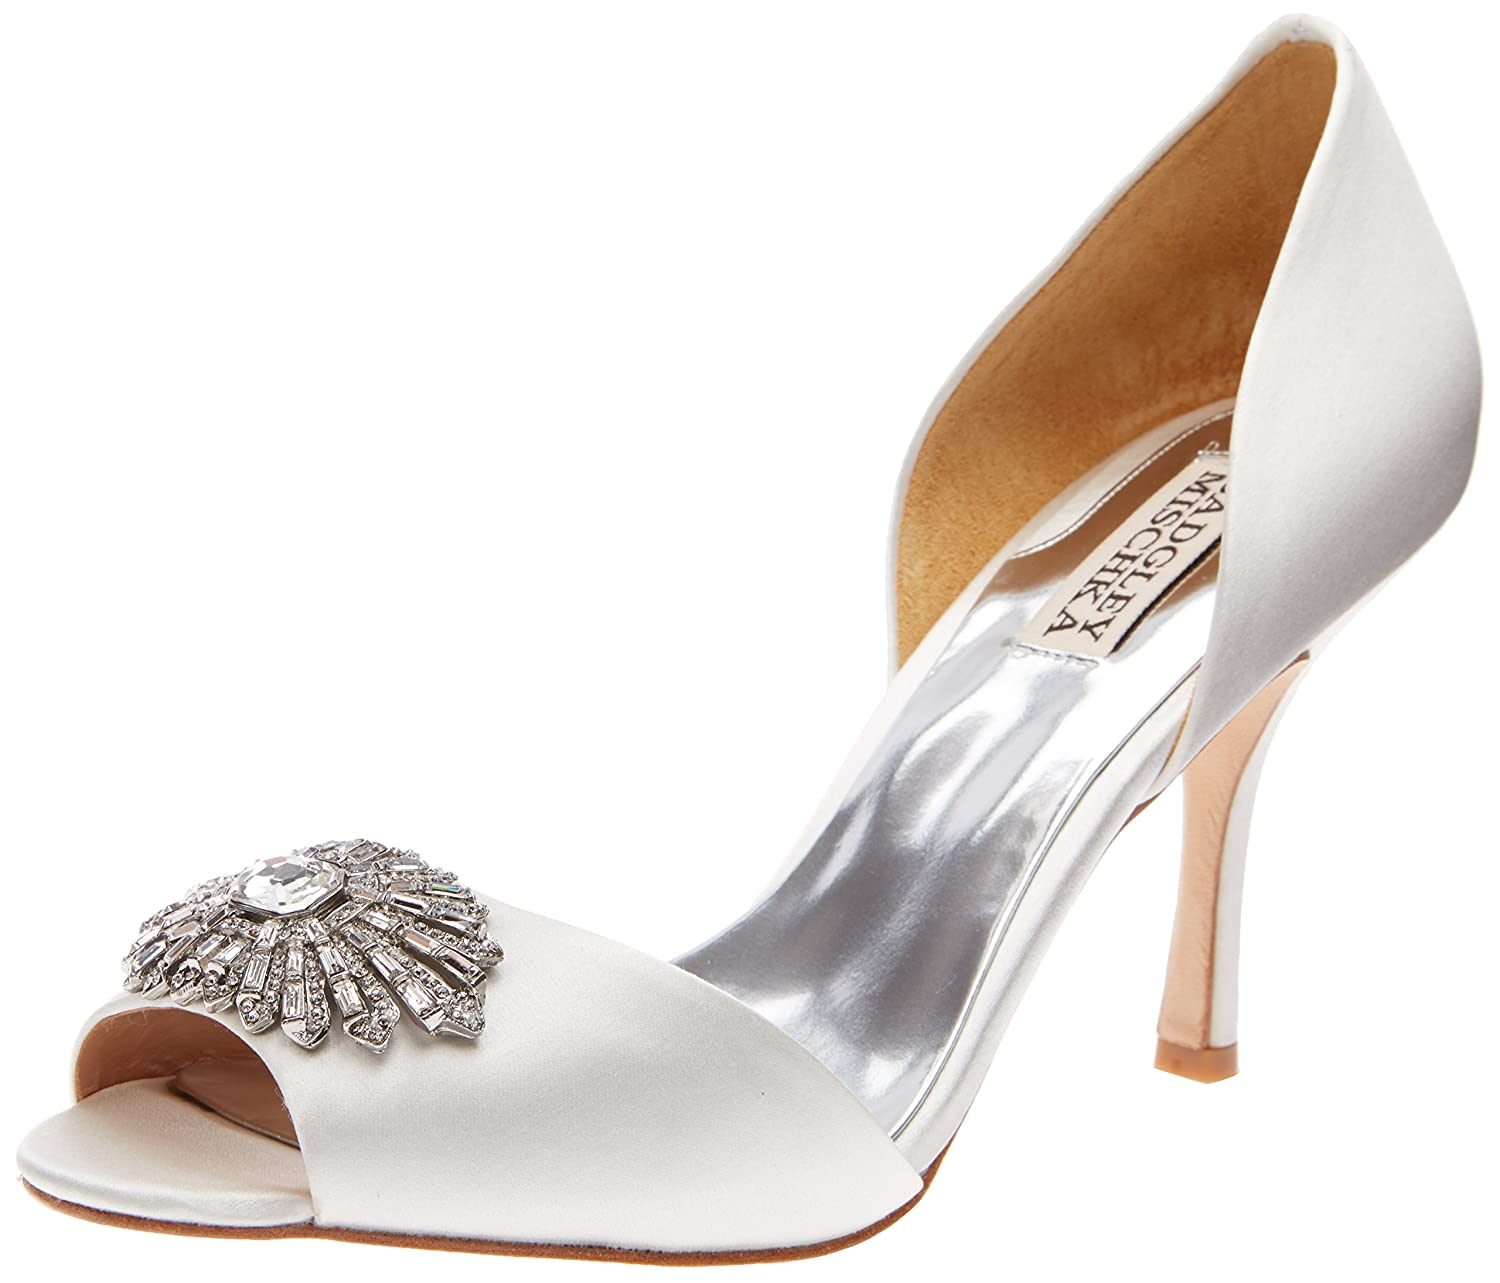 Badgley mischka salsa shoes